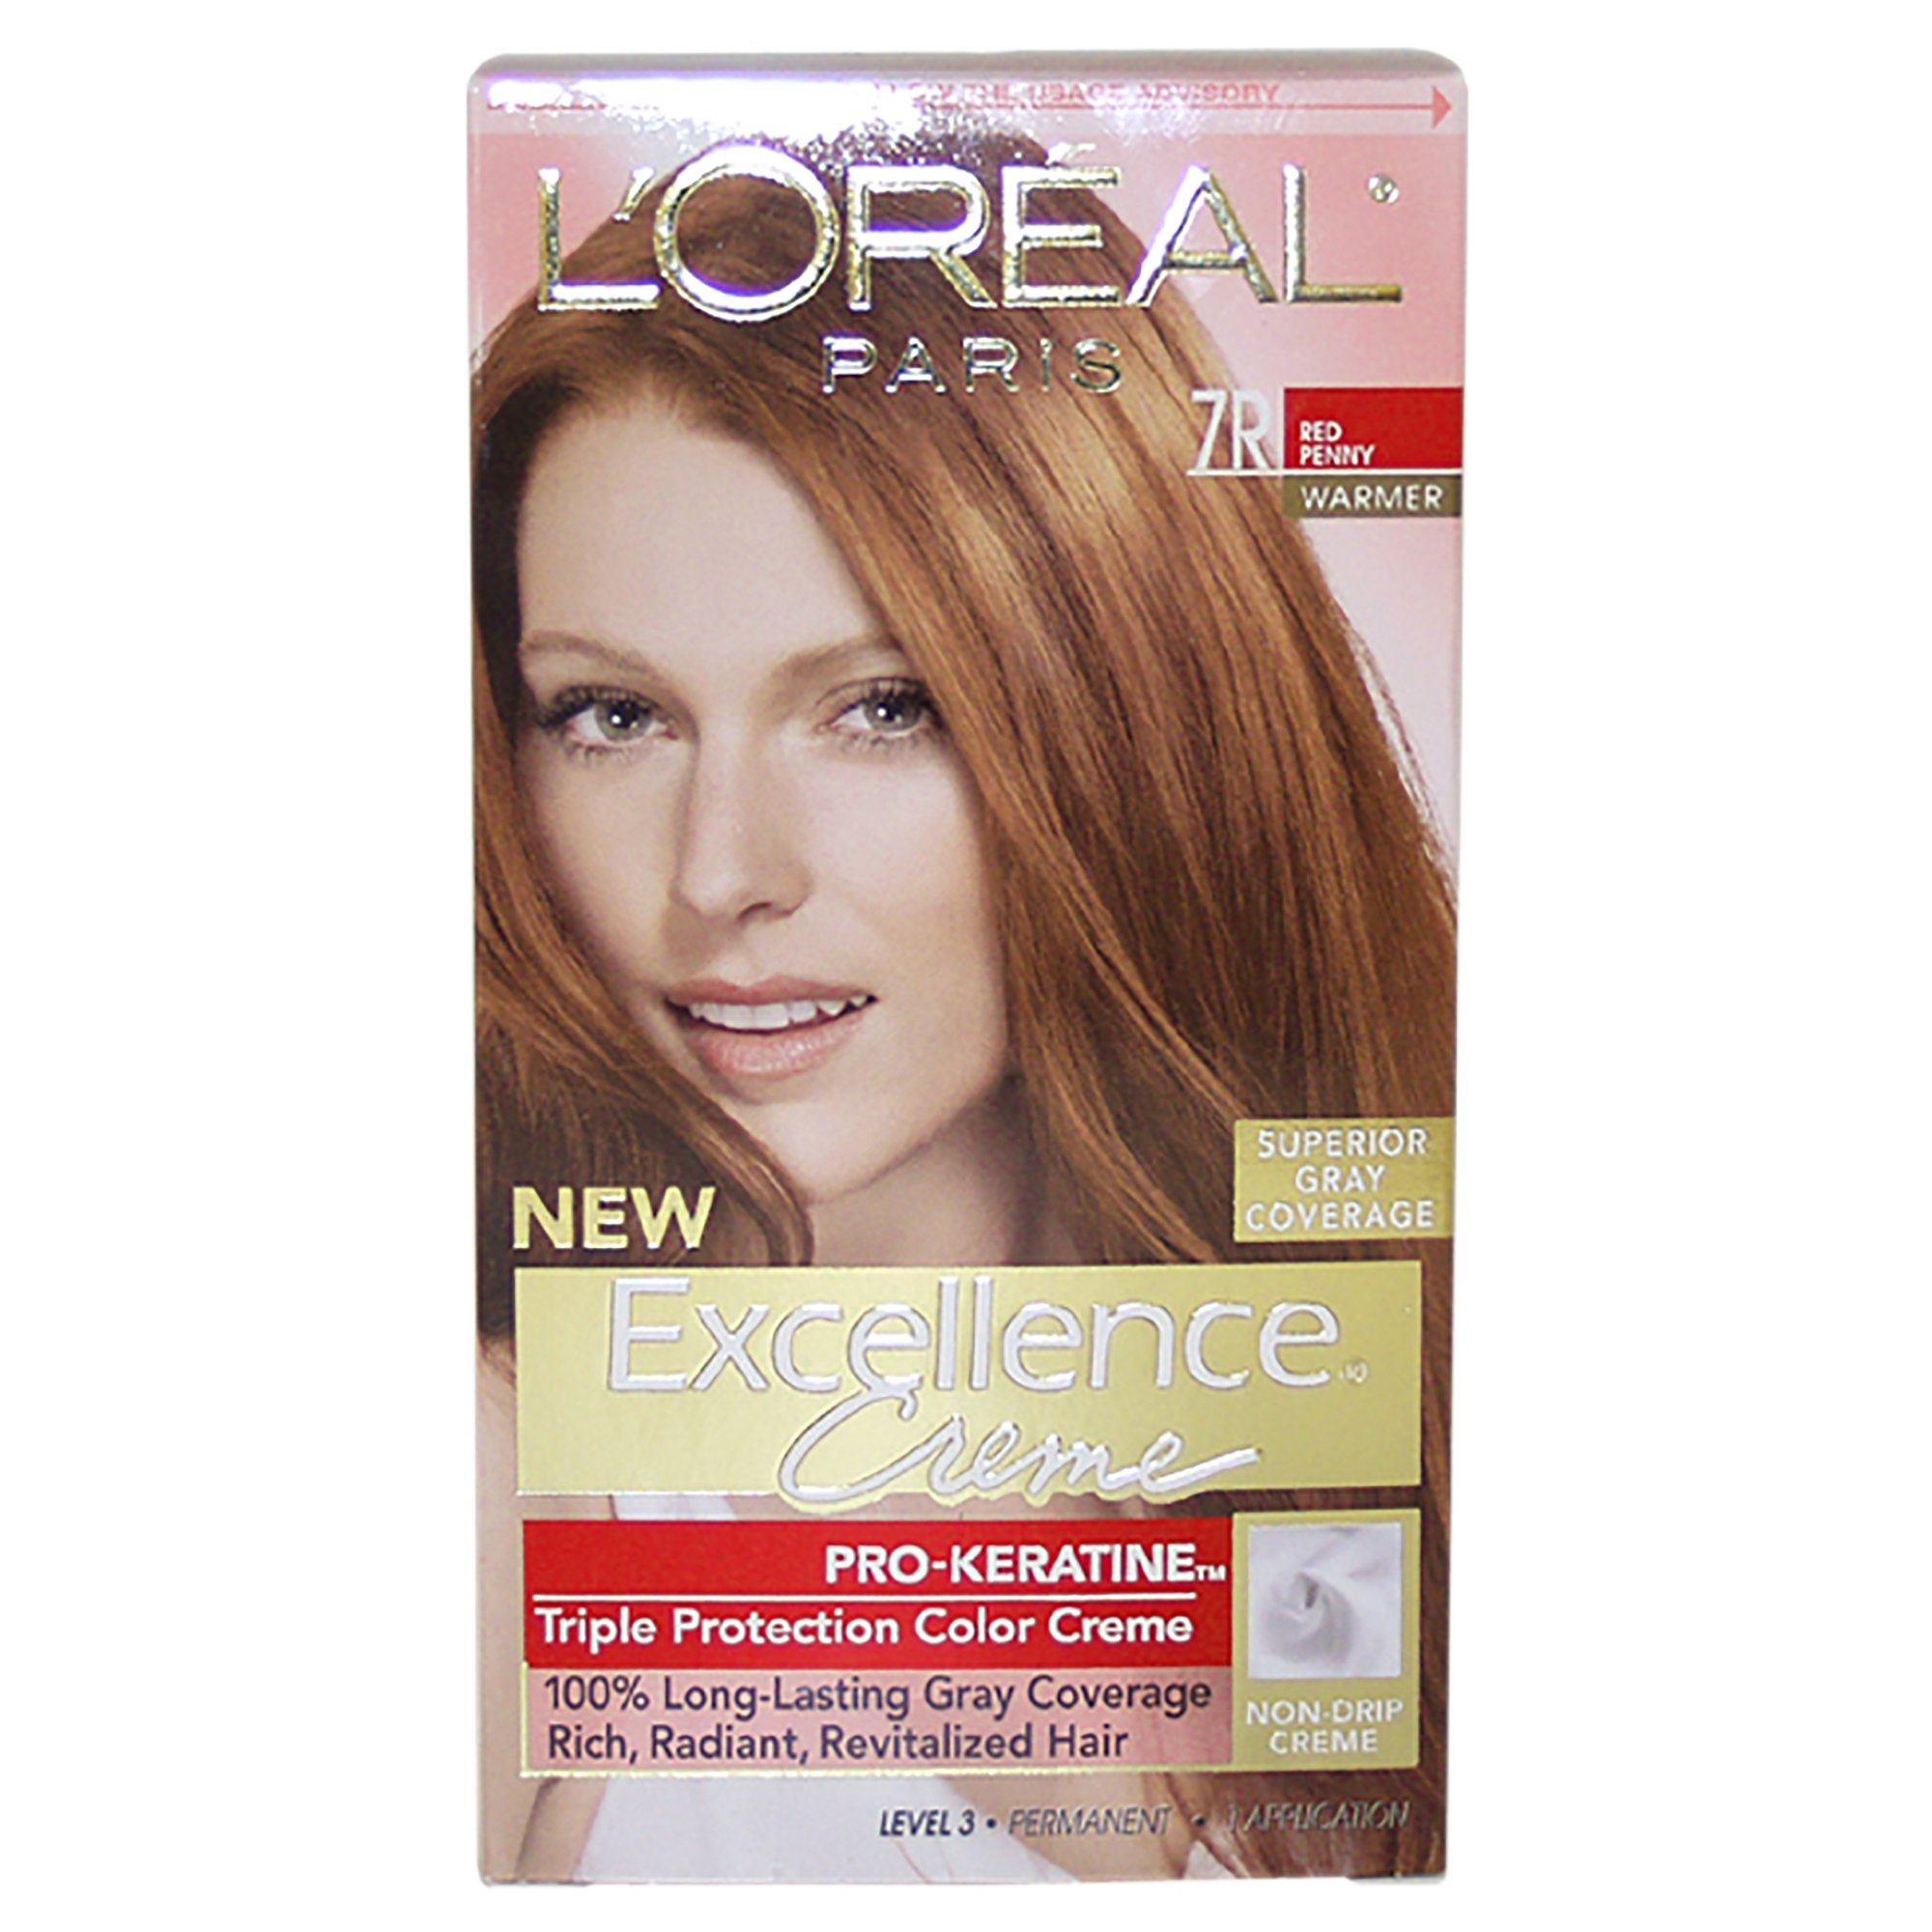 Amazon loral paris excellence crme permanent hair color loreal paris excellence creme triple protection color 7r red penny 1ea geenschuldenfo Images